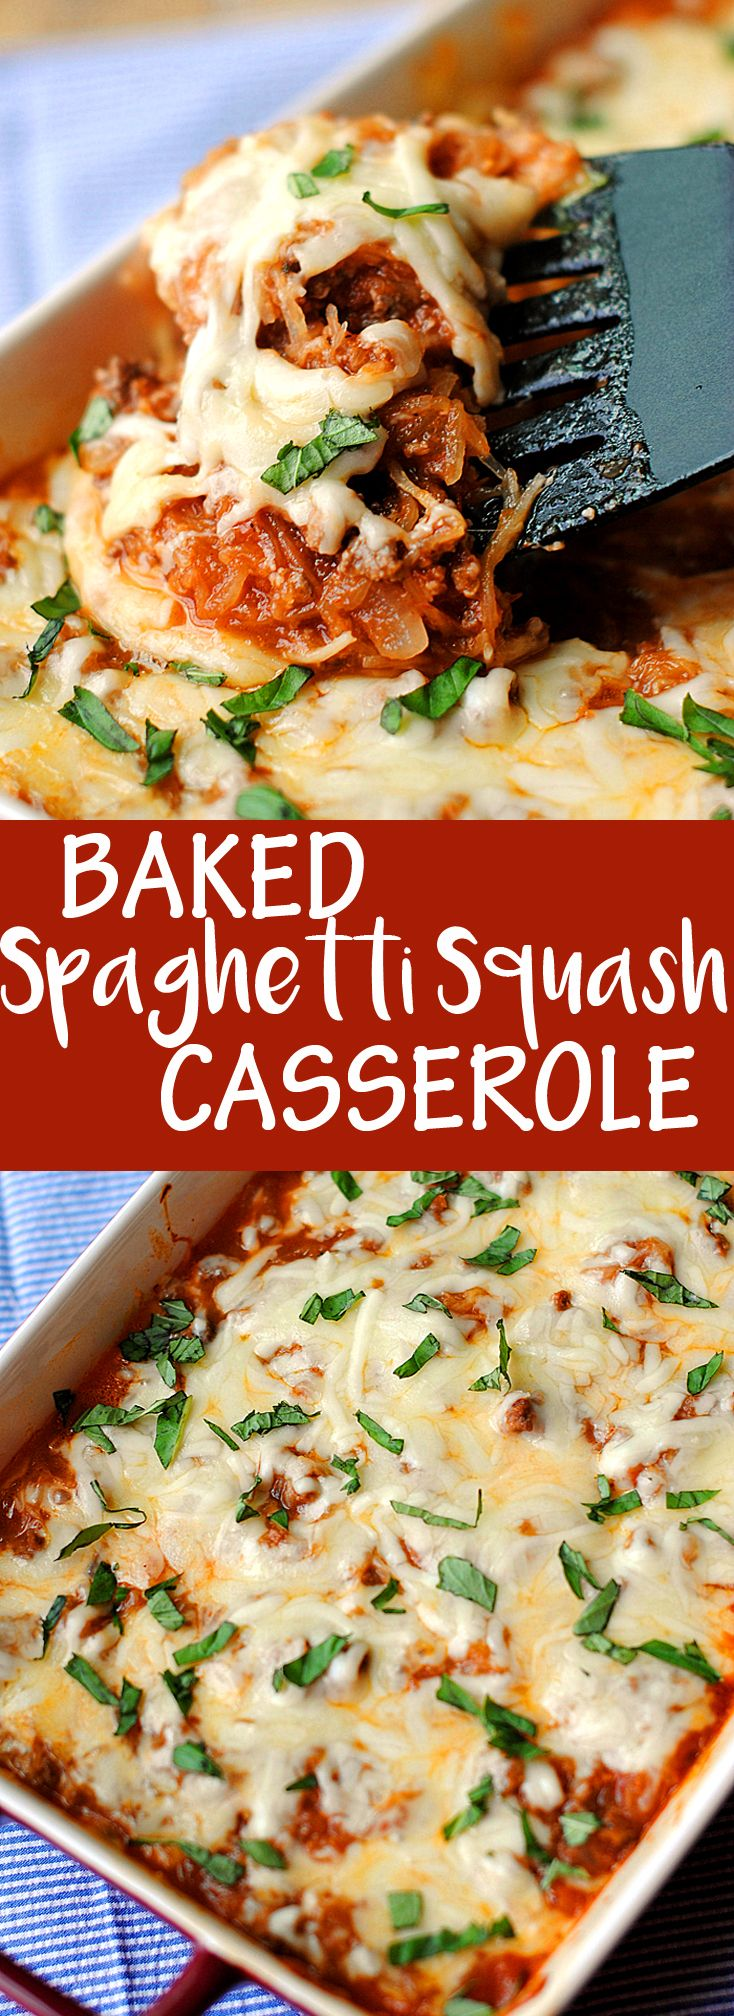 Baked Spaghetti Squash Casserole - our family's favorite! | Eat Yourself Skinny